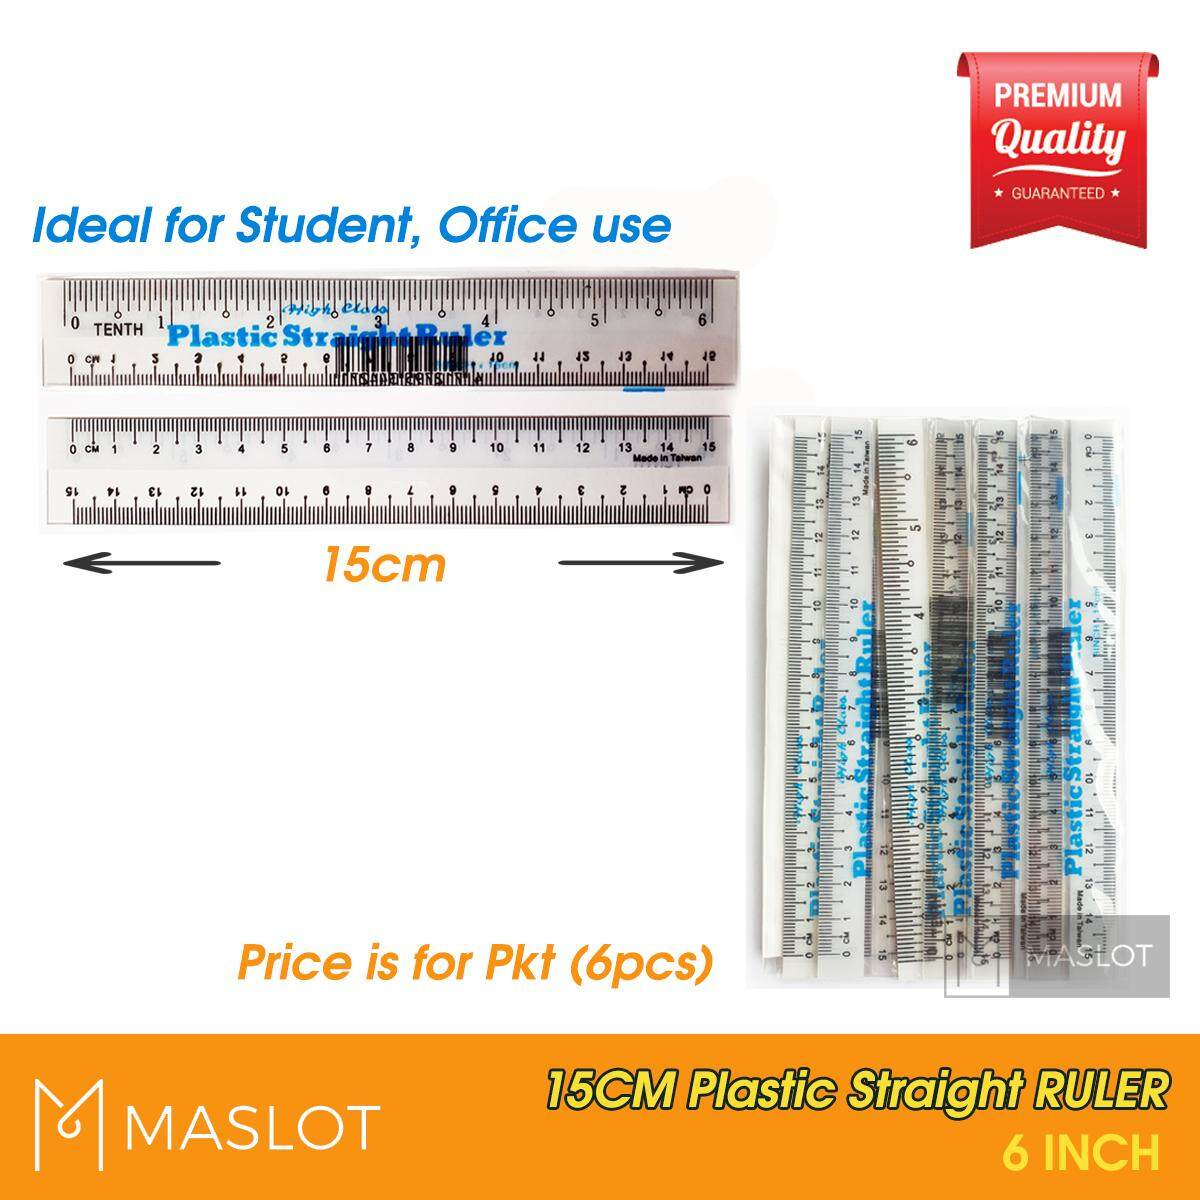 Plastic Student Straight Ruler 15cm (a=6pcs/pkt) (b=36pcs/box) By Maslot.